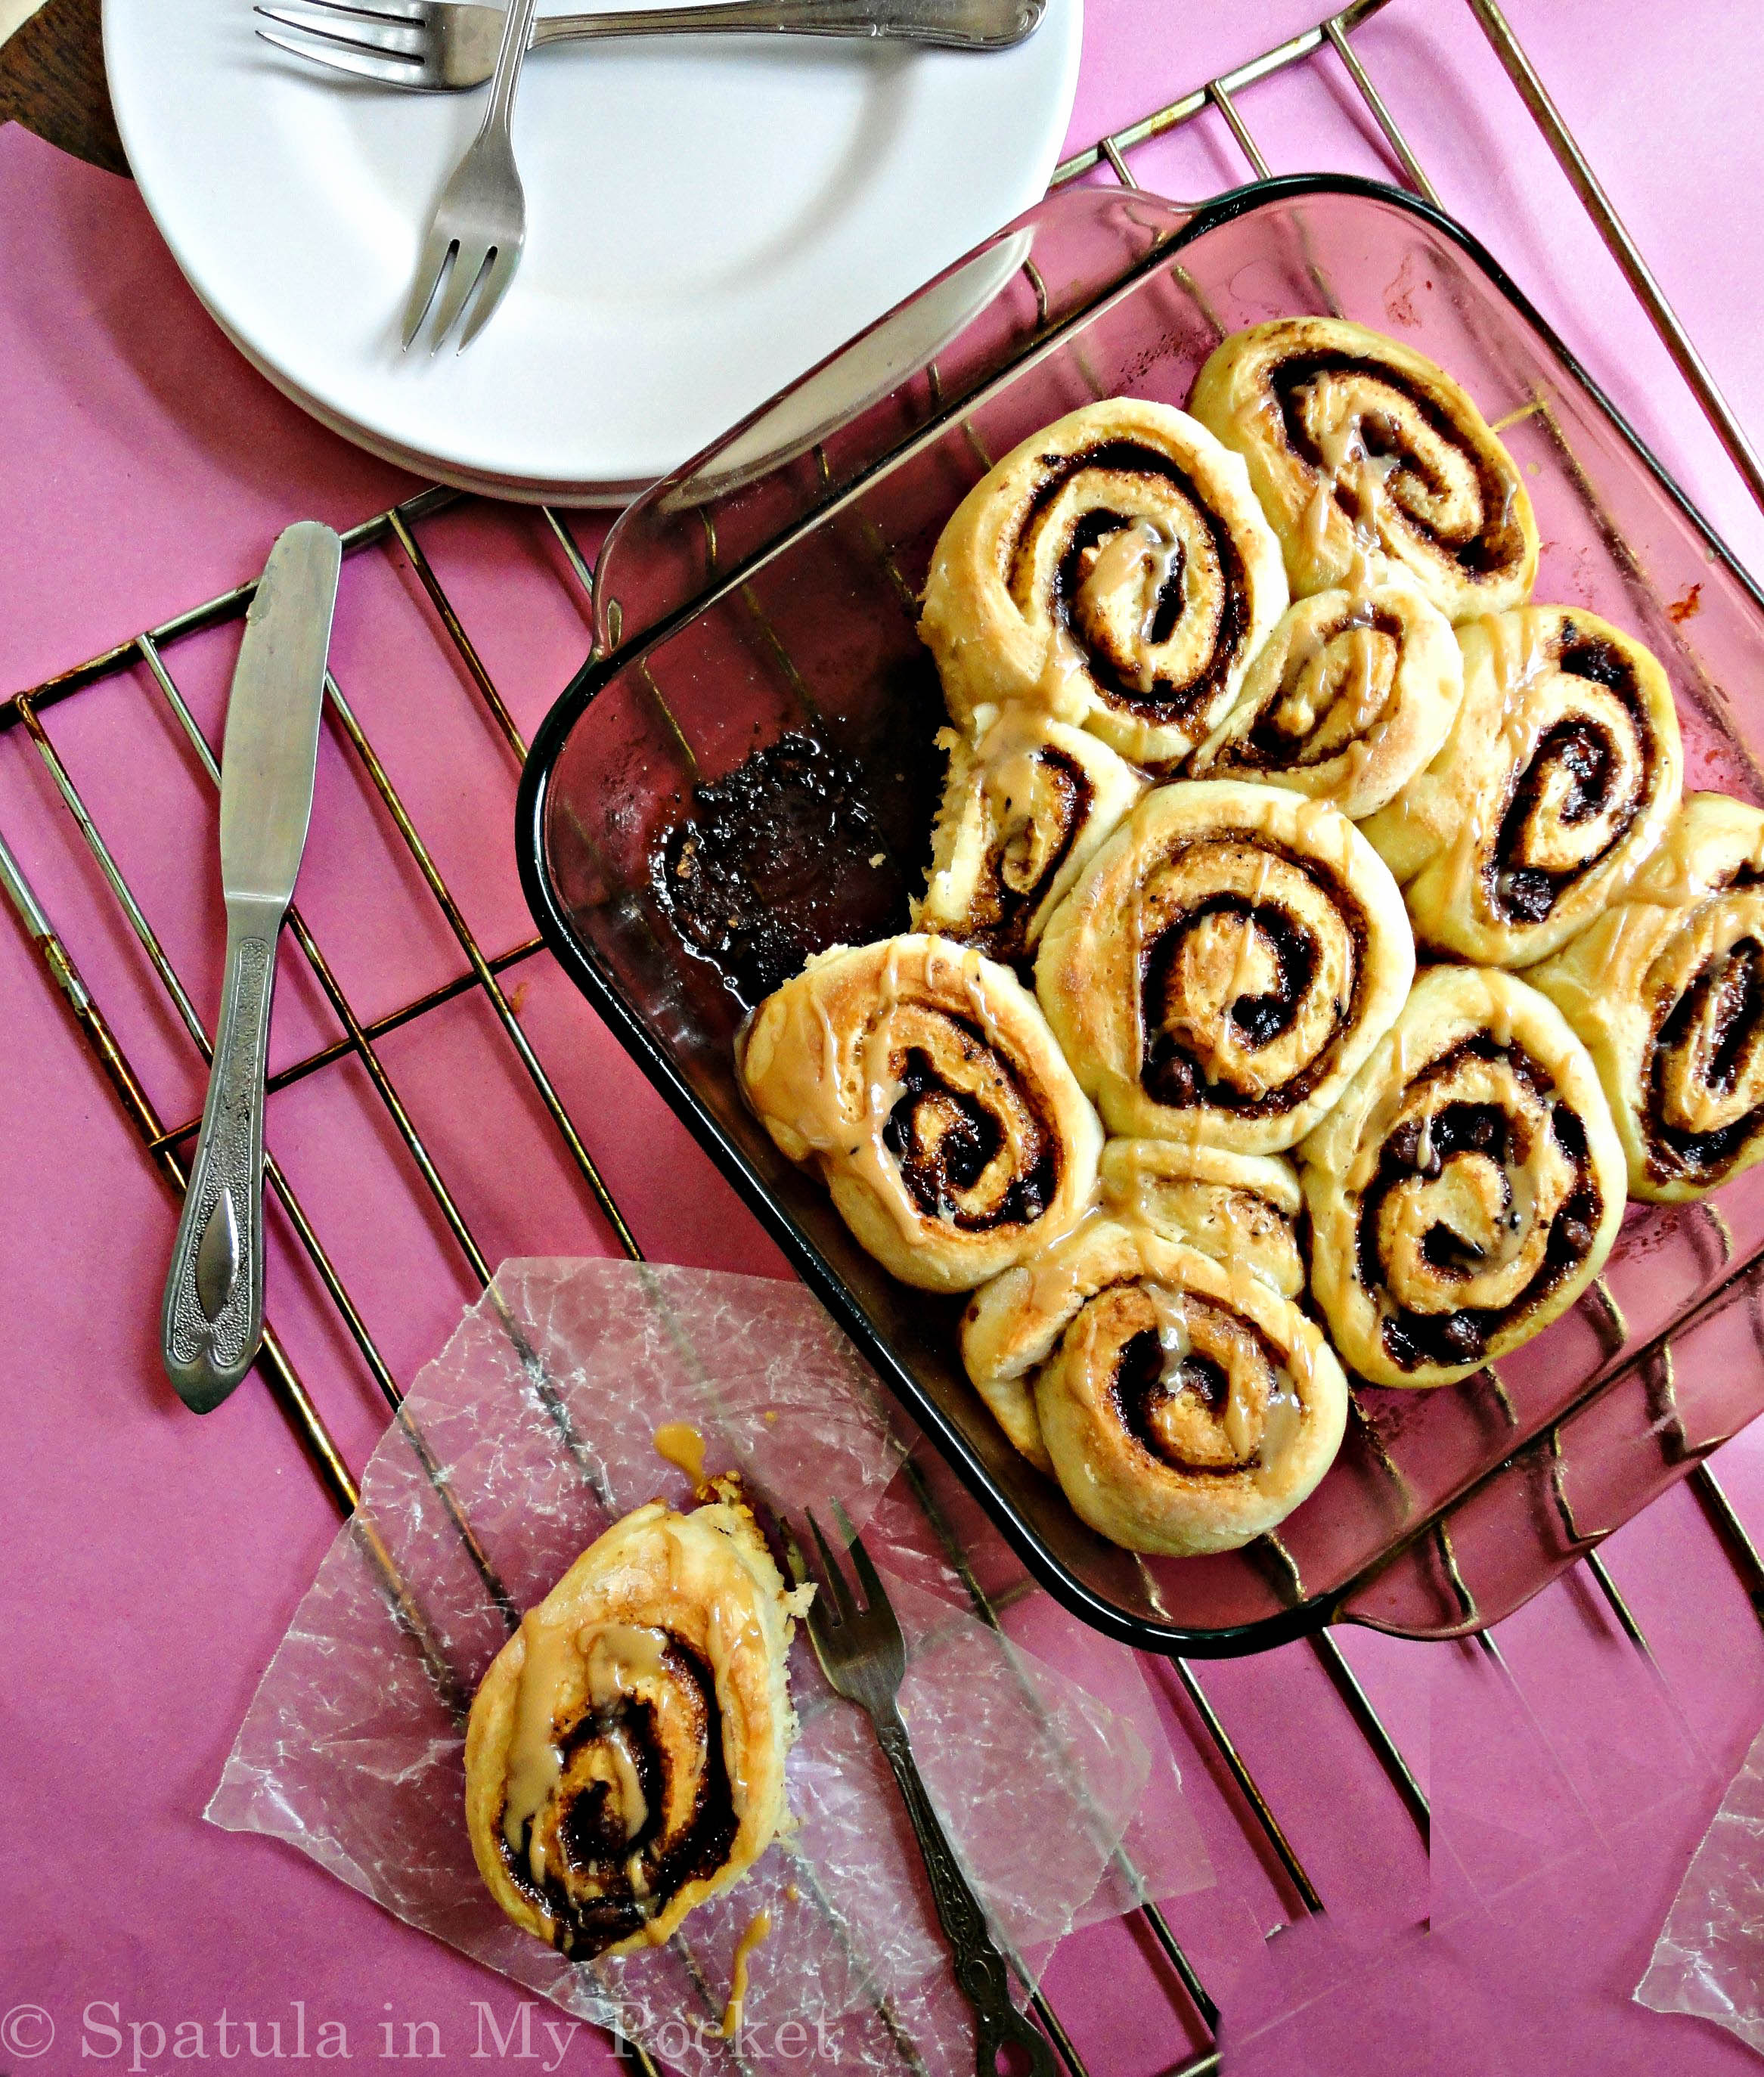 Your standard cinnamon rolls amped up a notch with the glorious addition of coffee and chocolate.